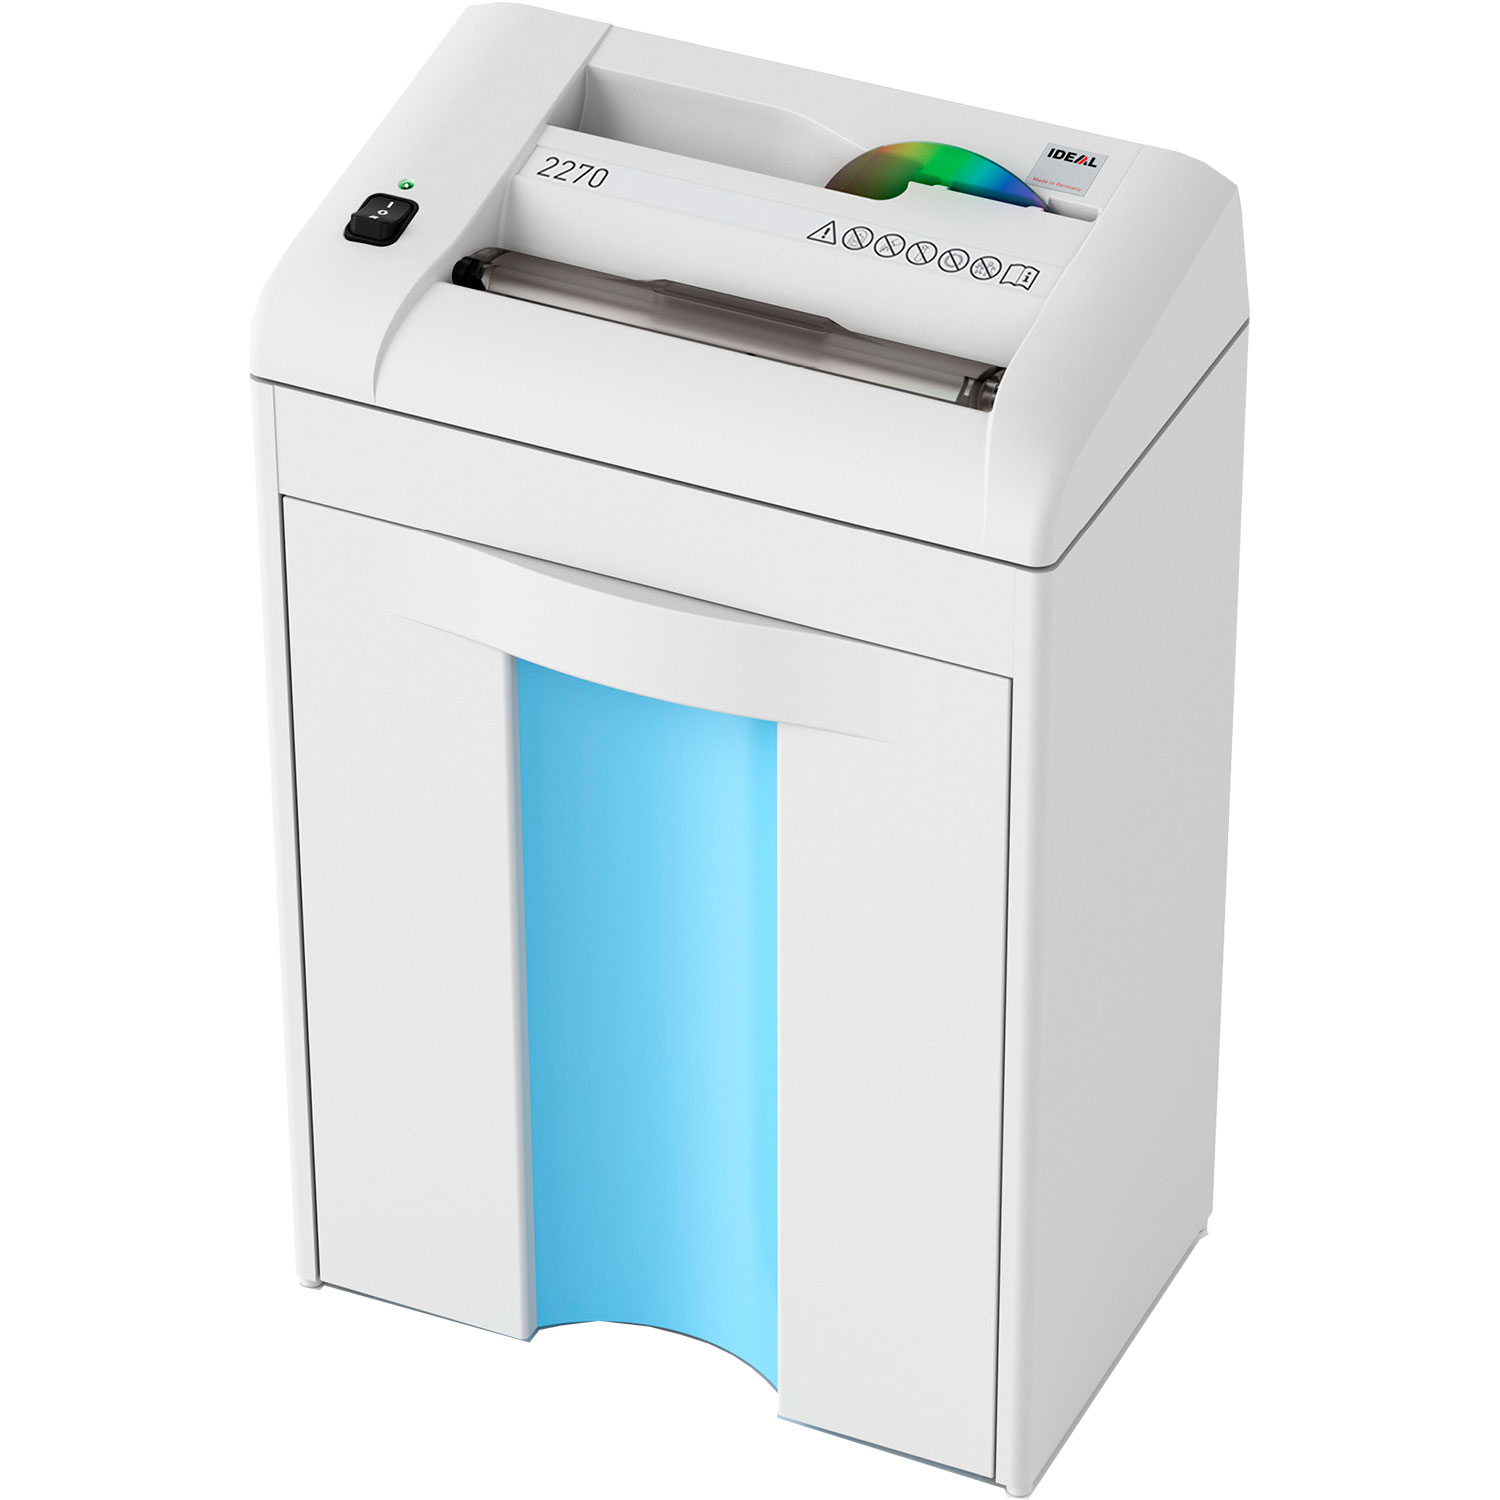 IDEAL 2270CC 3 x 25mm Cross Cut Deskside Paper & CD/DVD Shredder